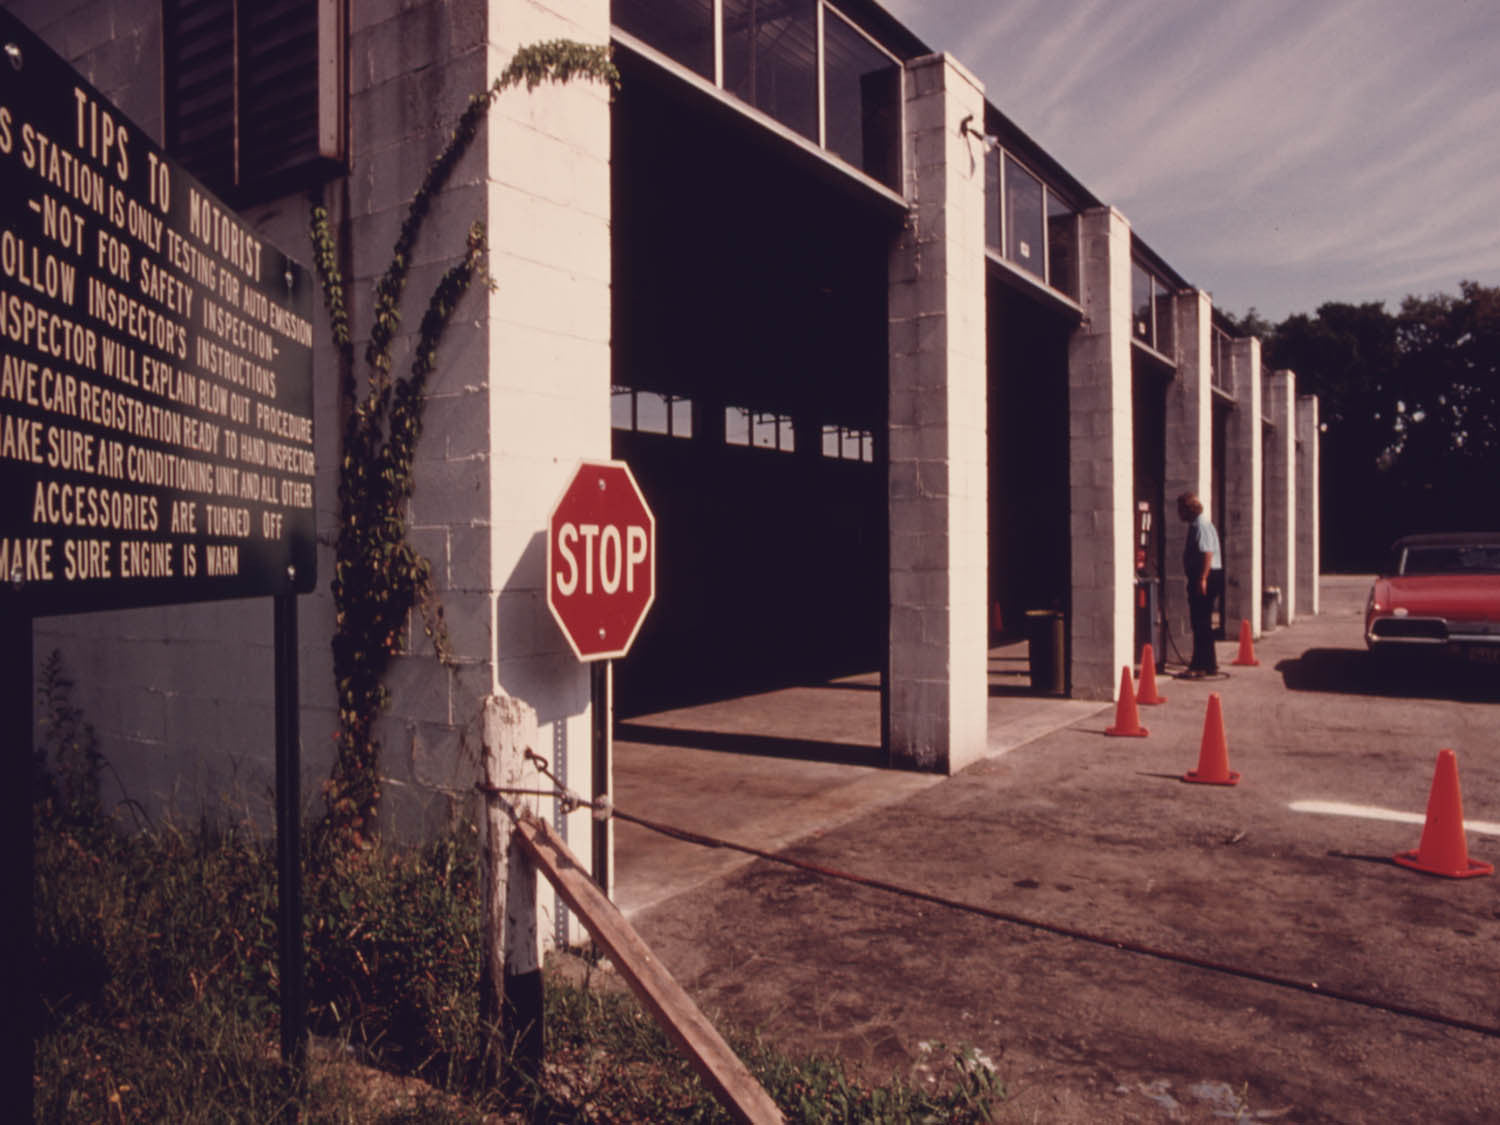 HAMILTON COUNTY AUTO EMISSION INSPECTION STATION IN THE VILLAGE OF NEWTOWN,  OHIO